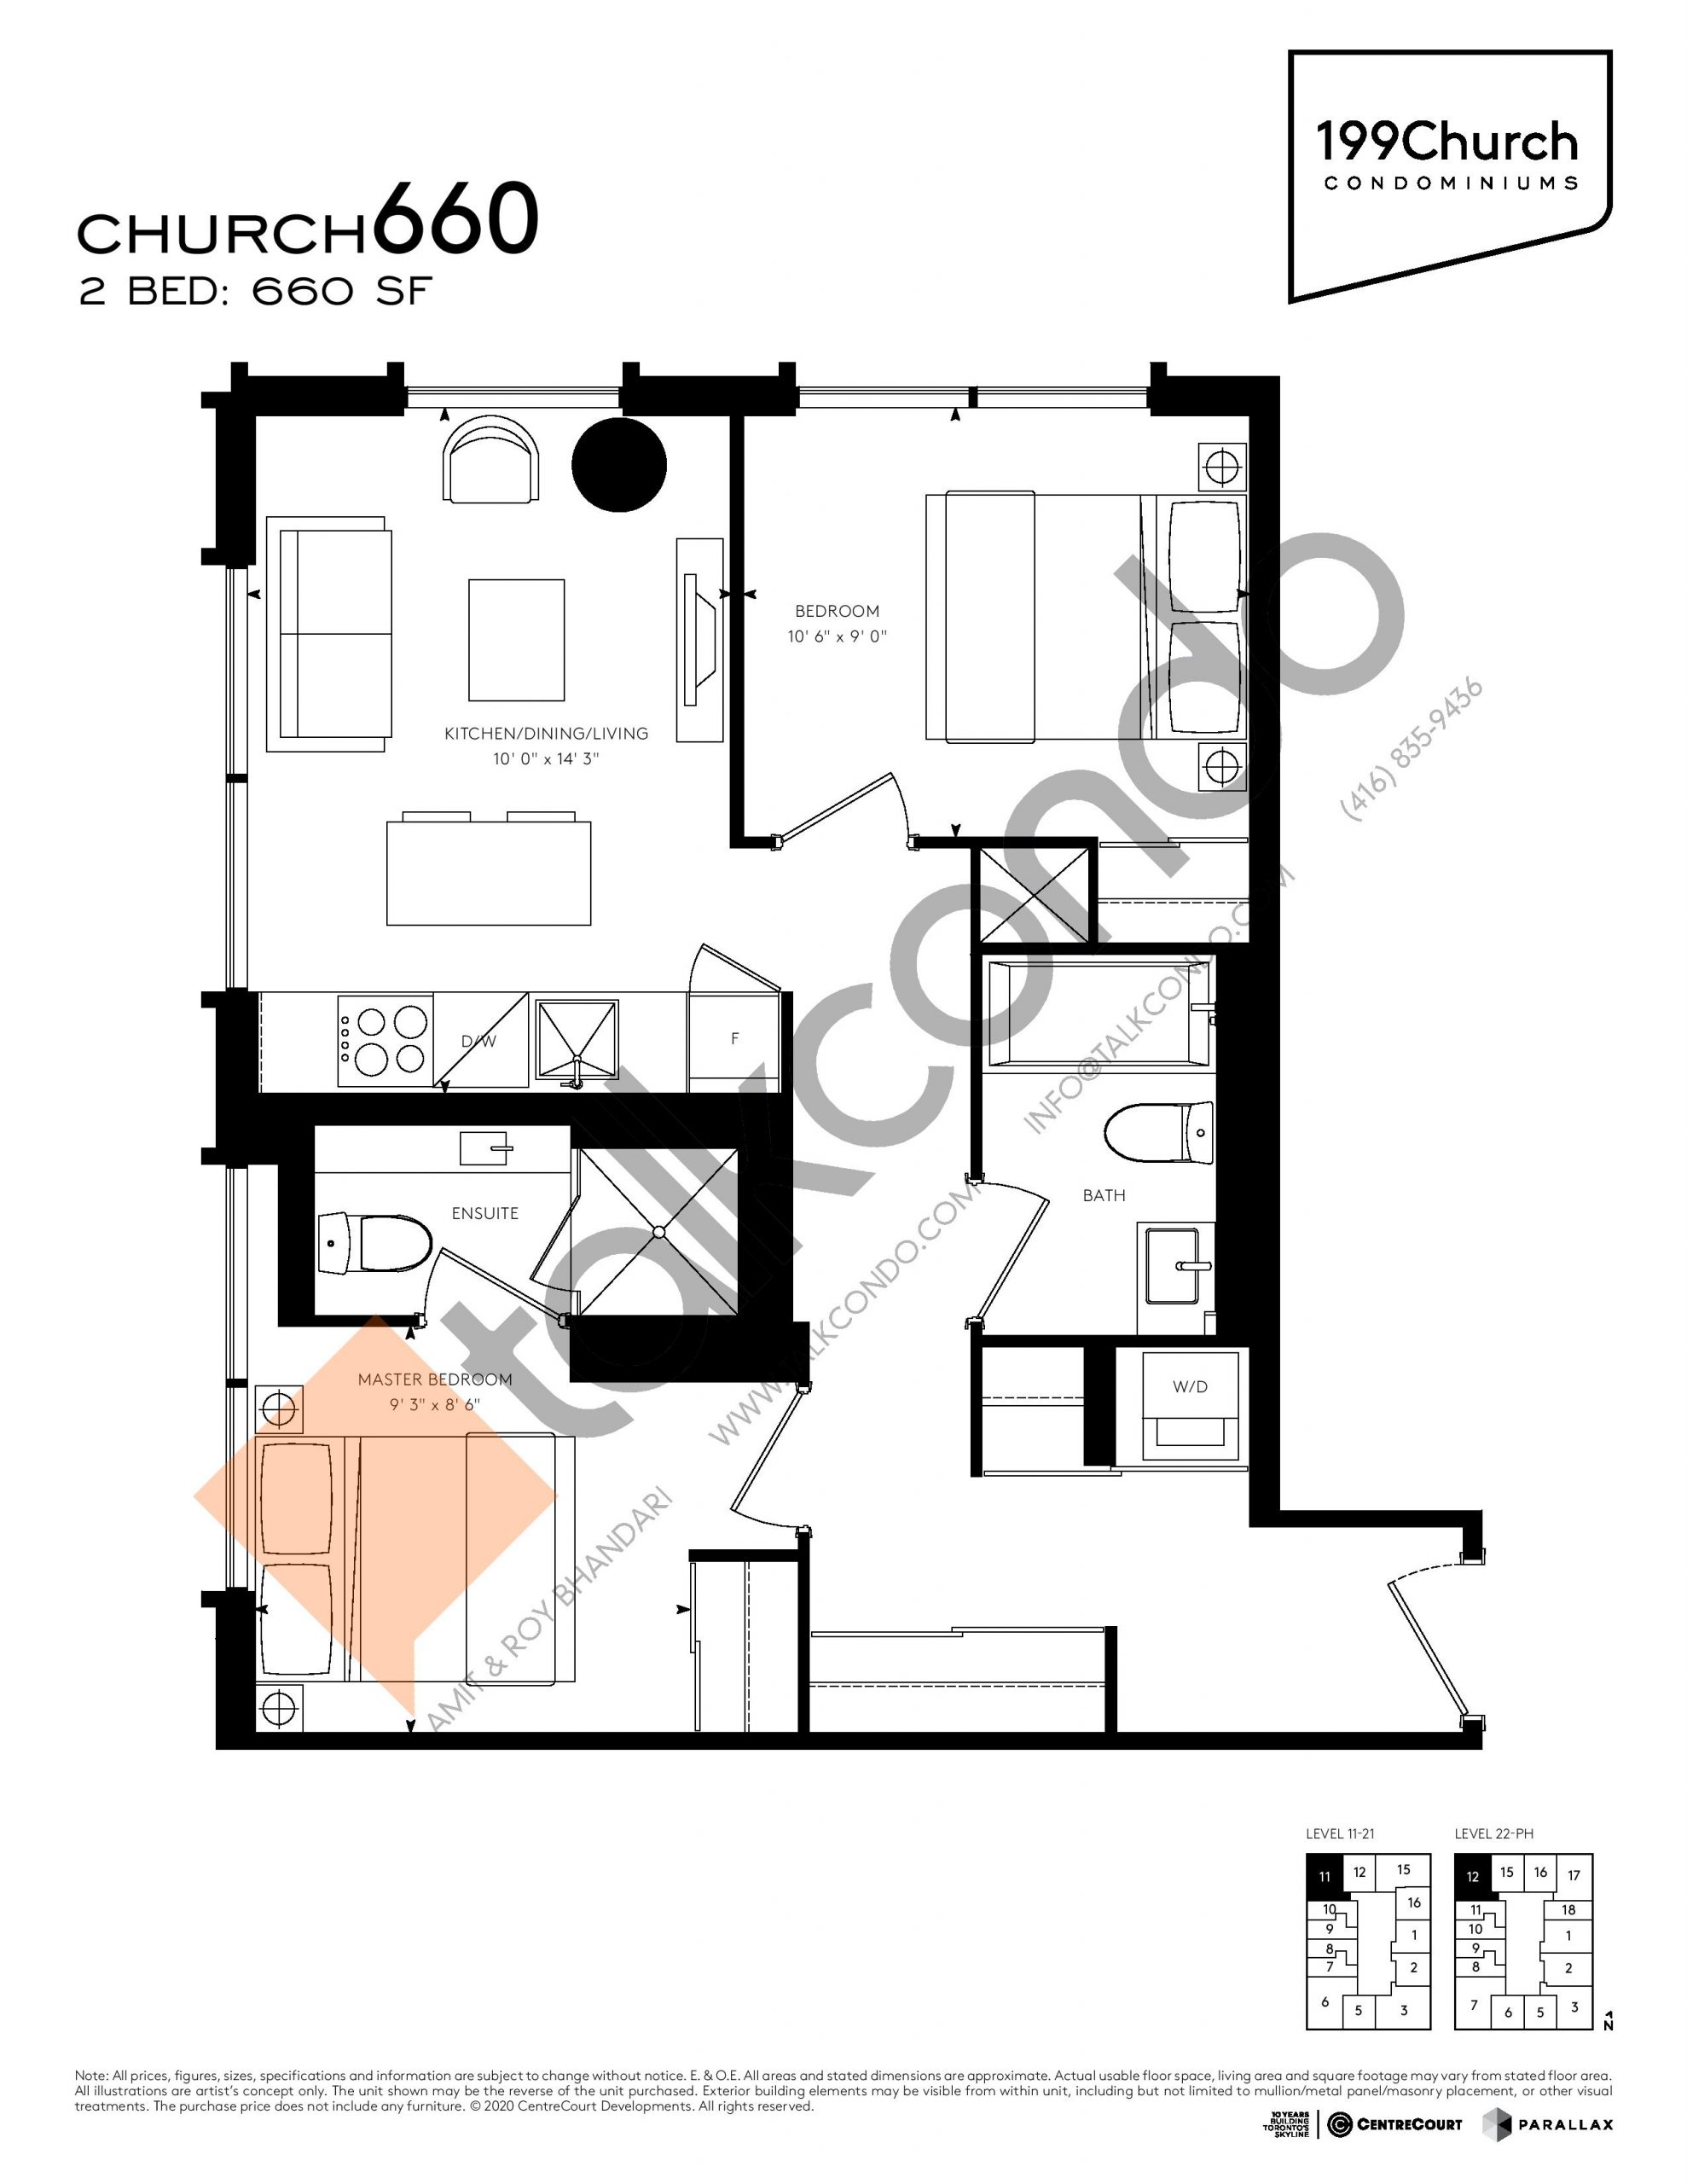 Church 660 Floor Plan at 199 Church Condos - 660 sq.ft